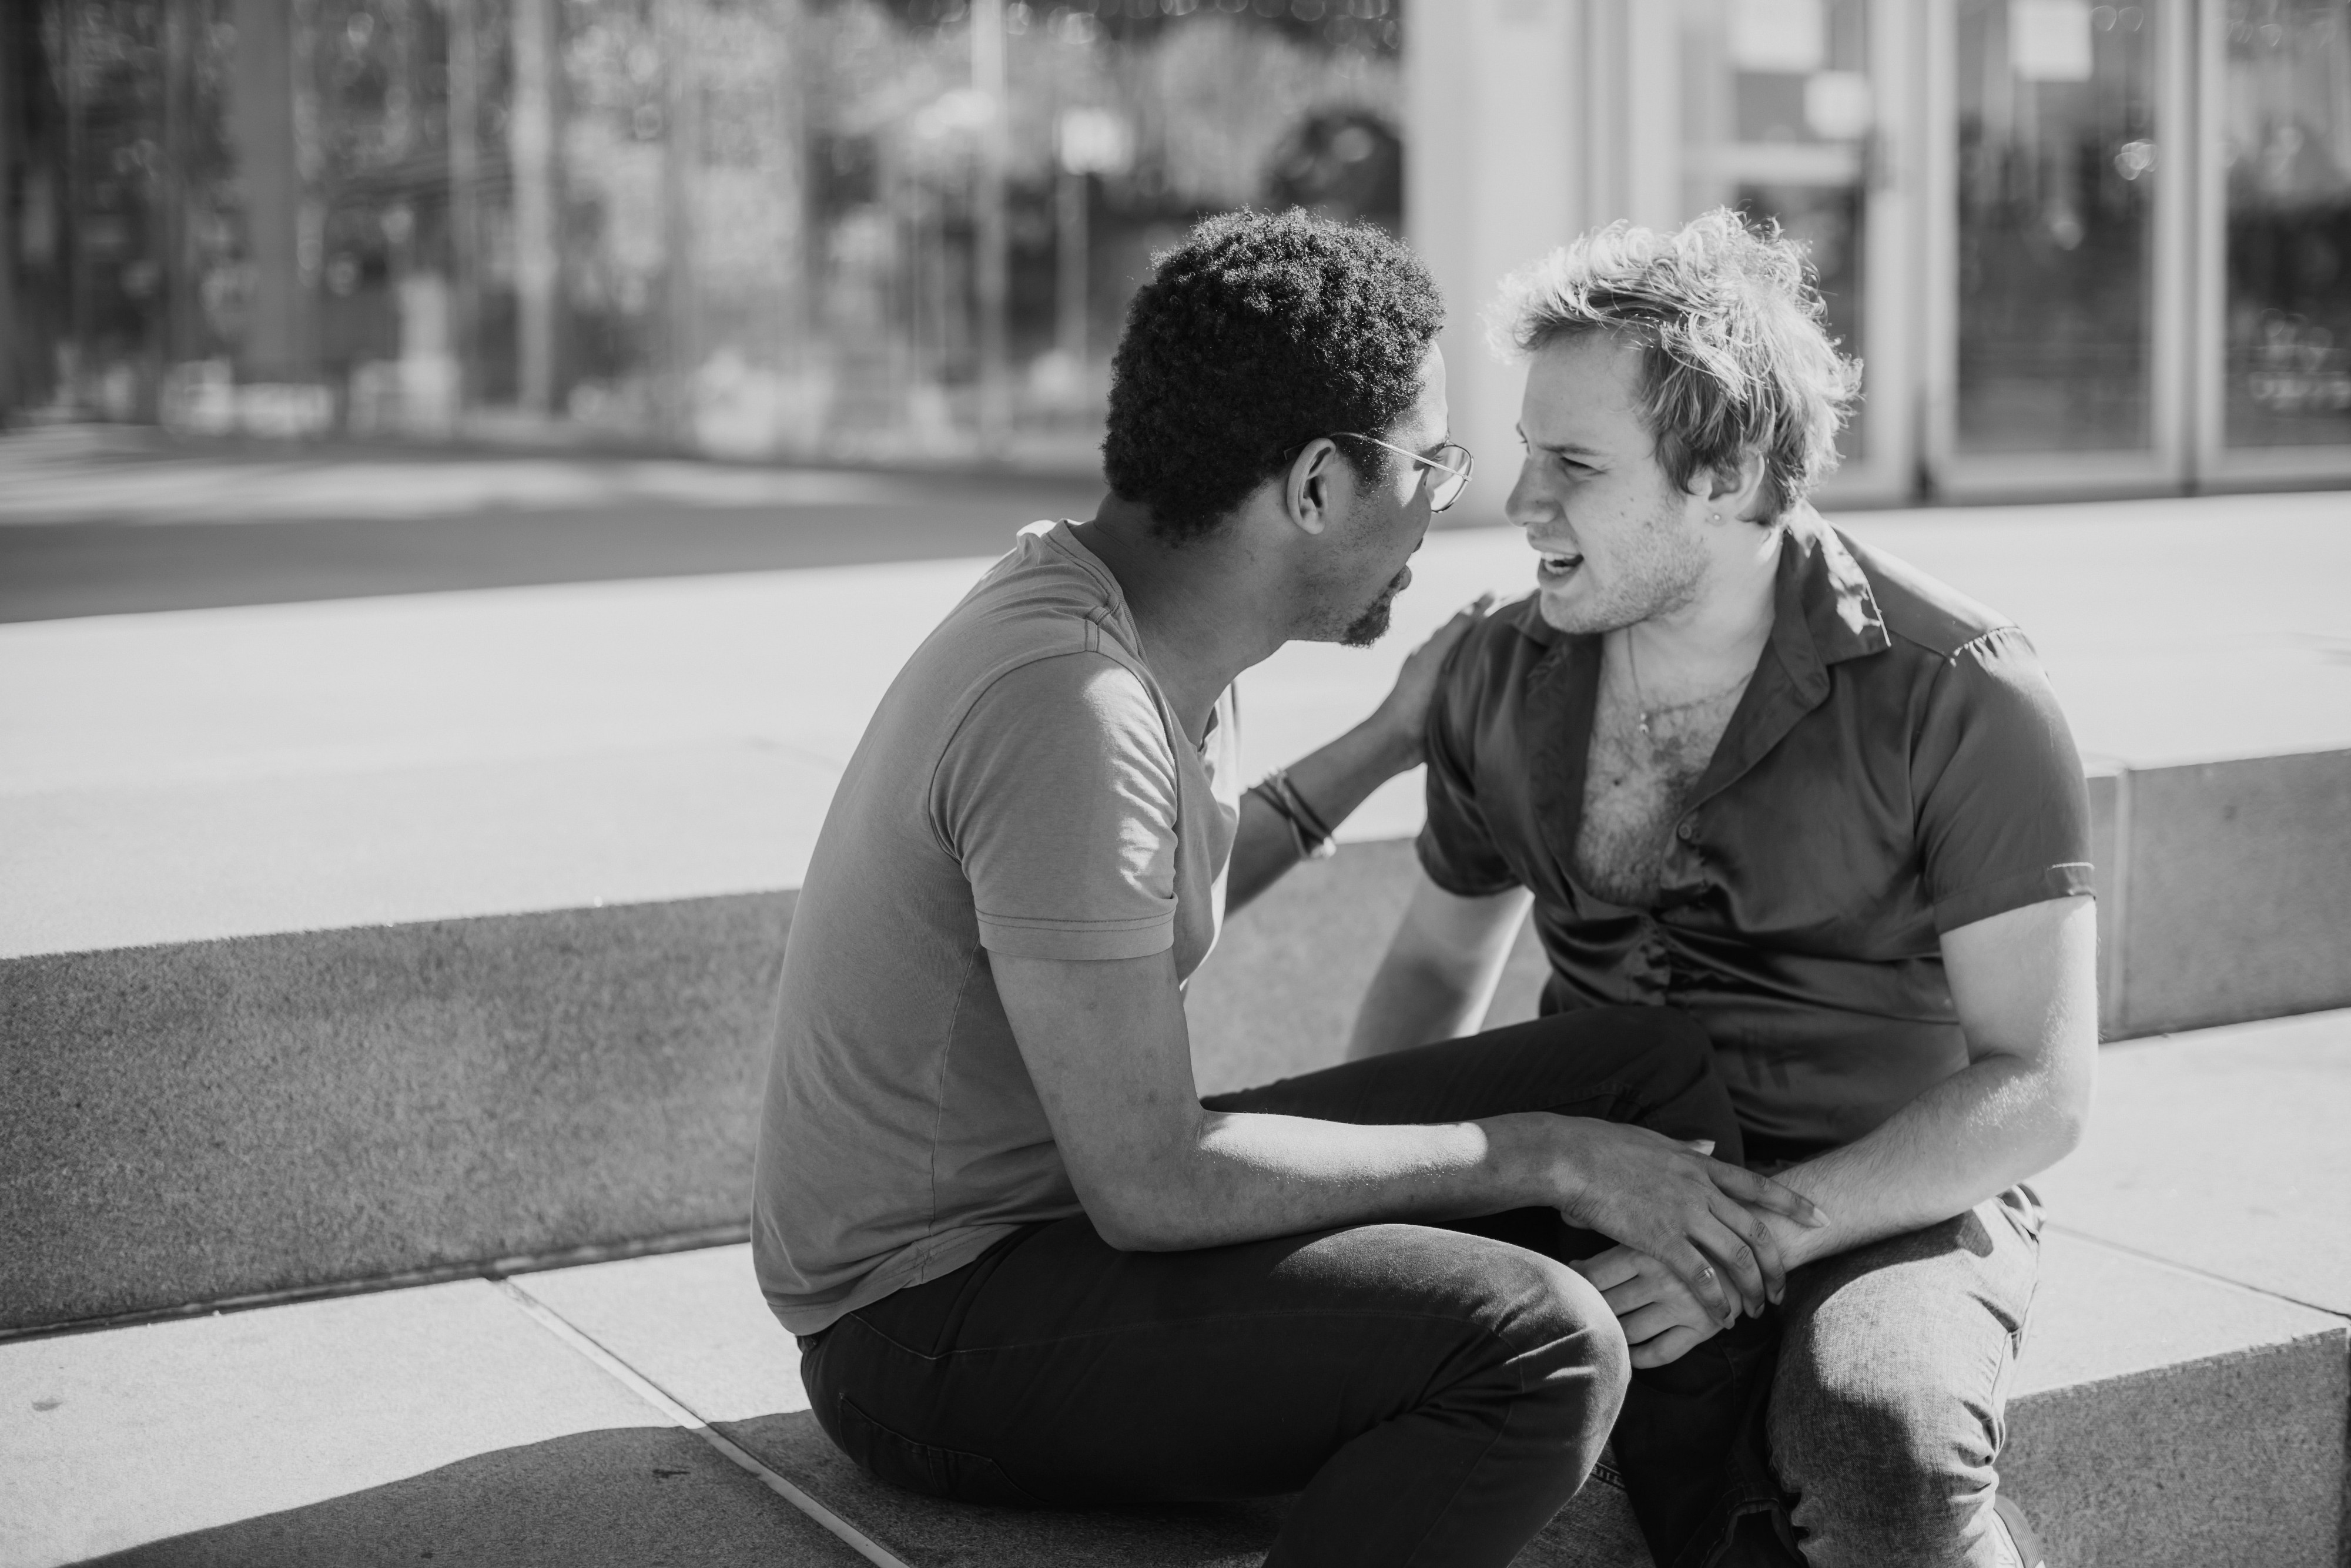 Two men sit outside on concrete steps. One gently touches the other on the arms as they appear to argue.